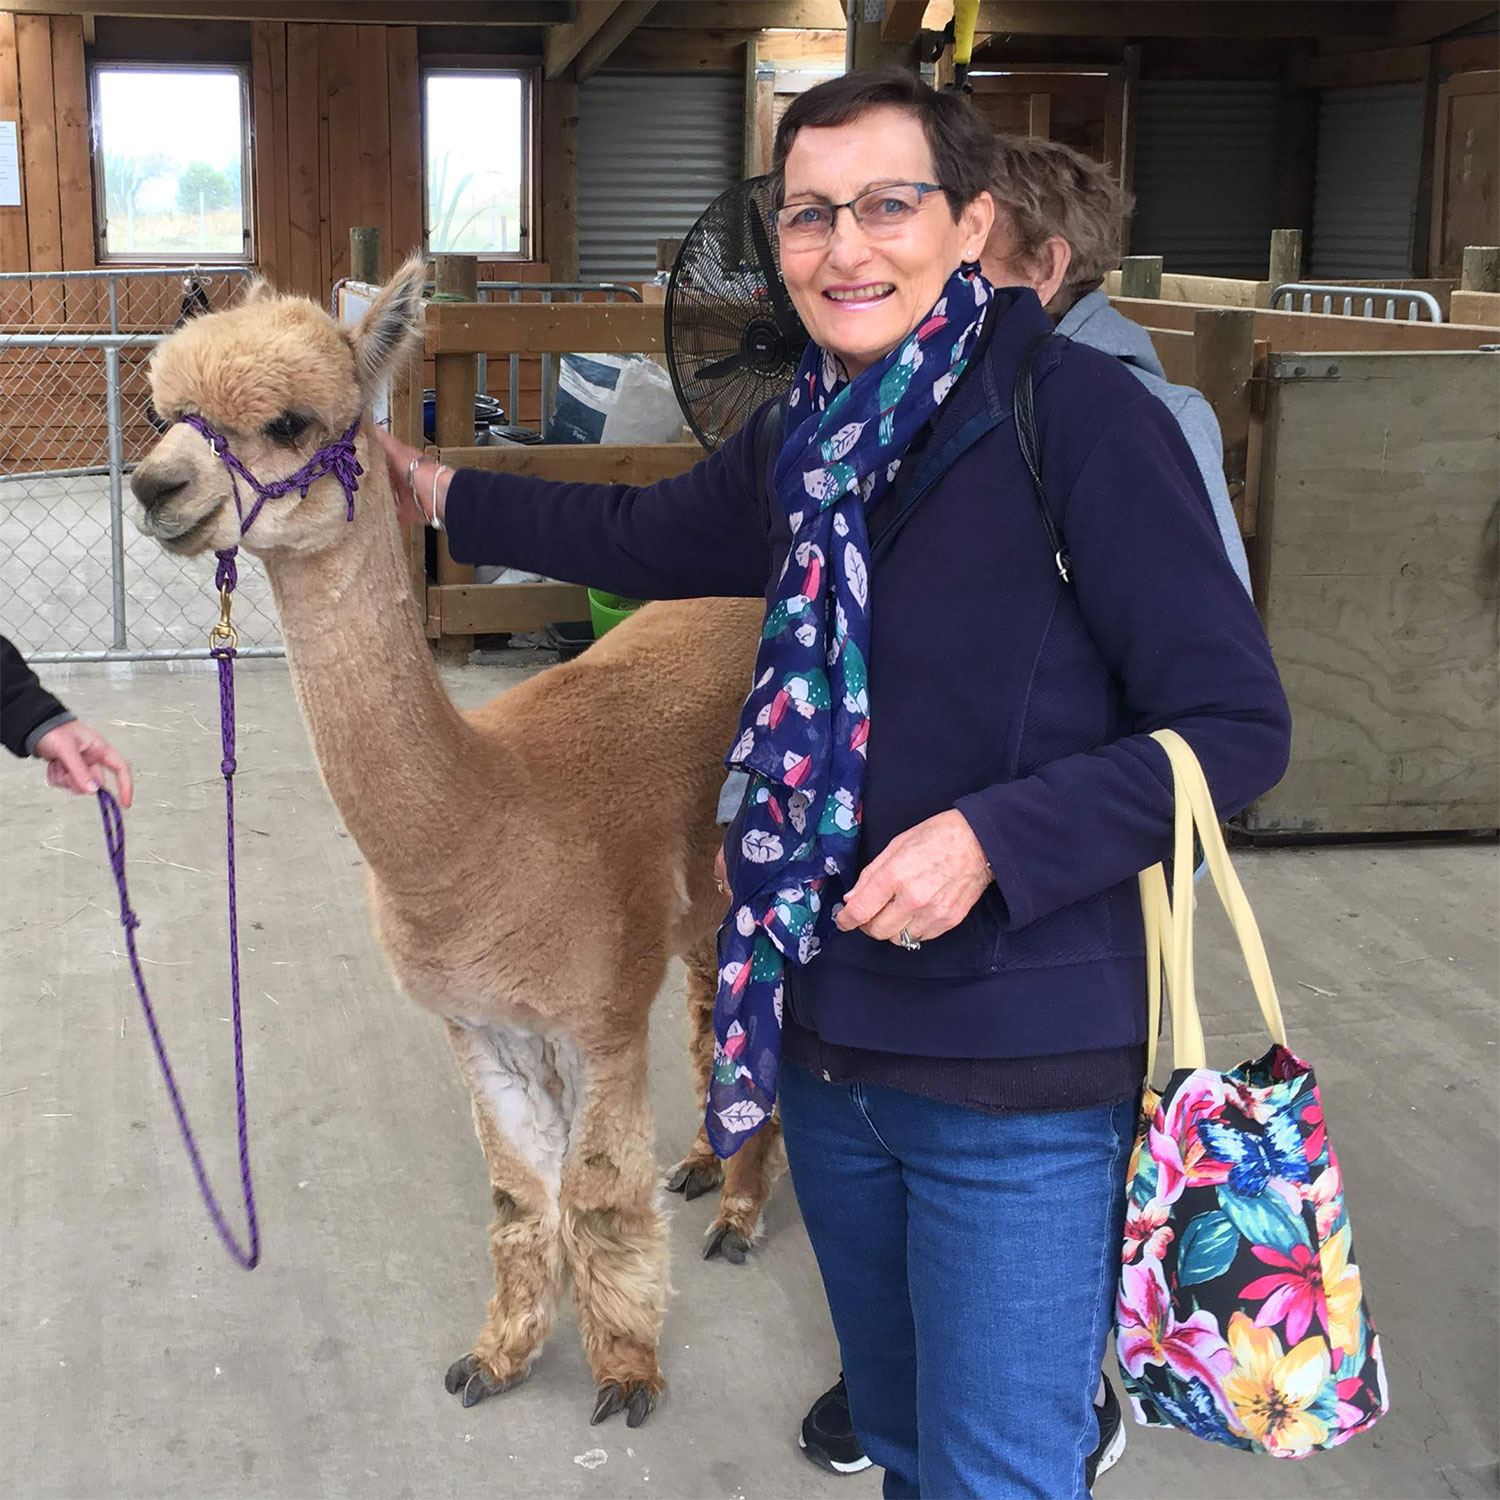 Meeting an alpaca at Shamarra Alpaca Farm in Akaroa, New Zealand